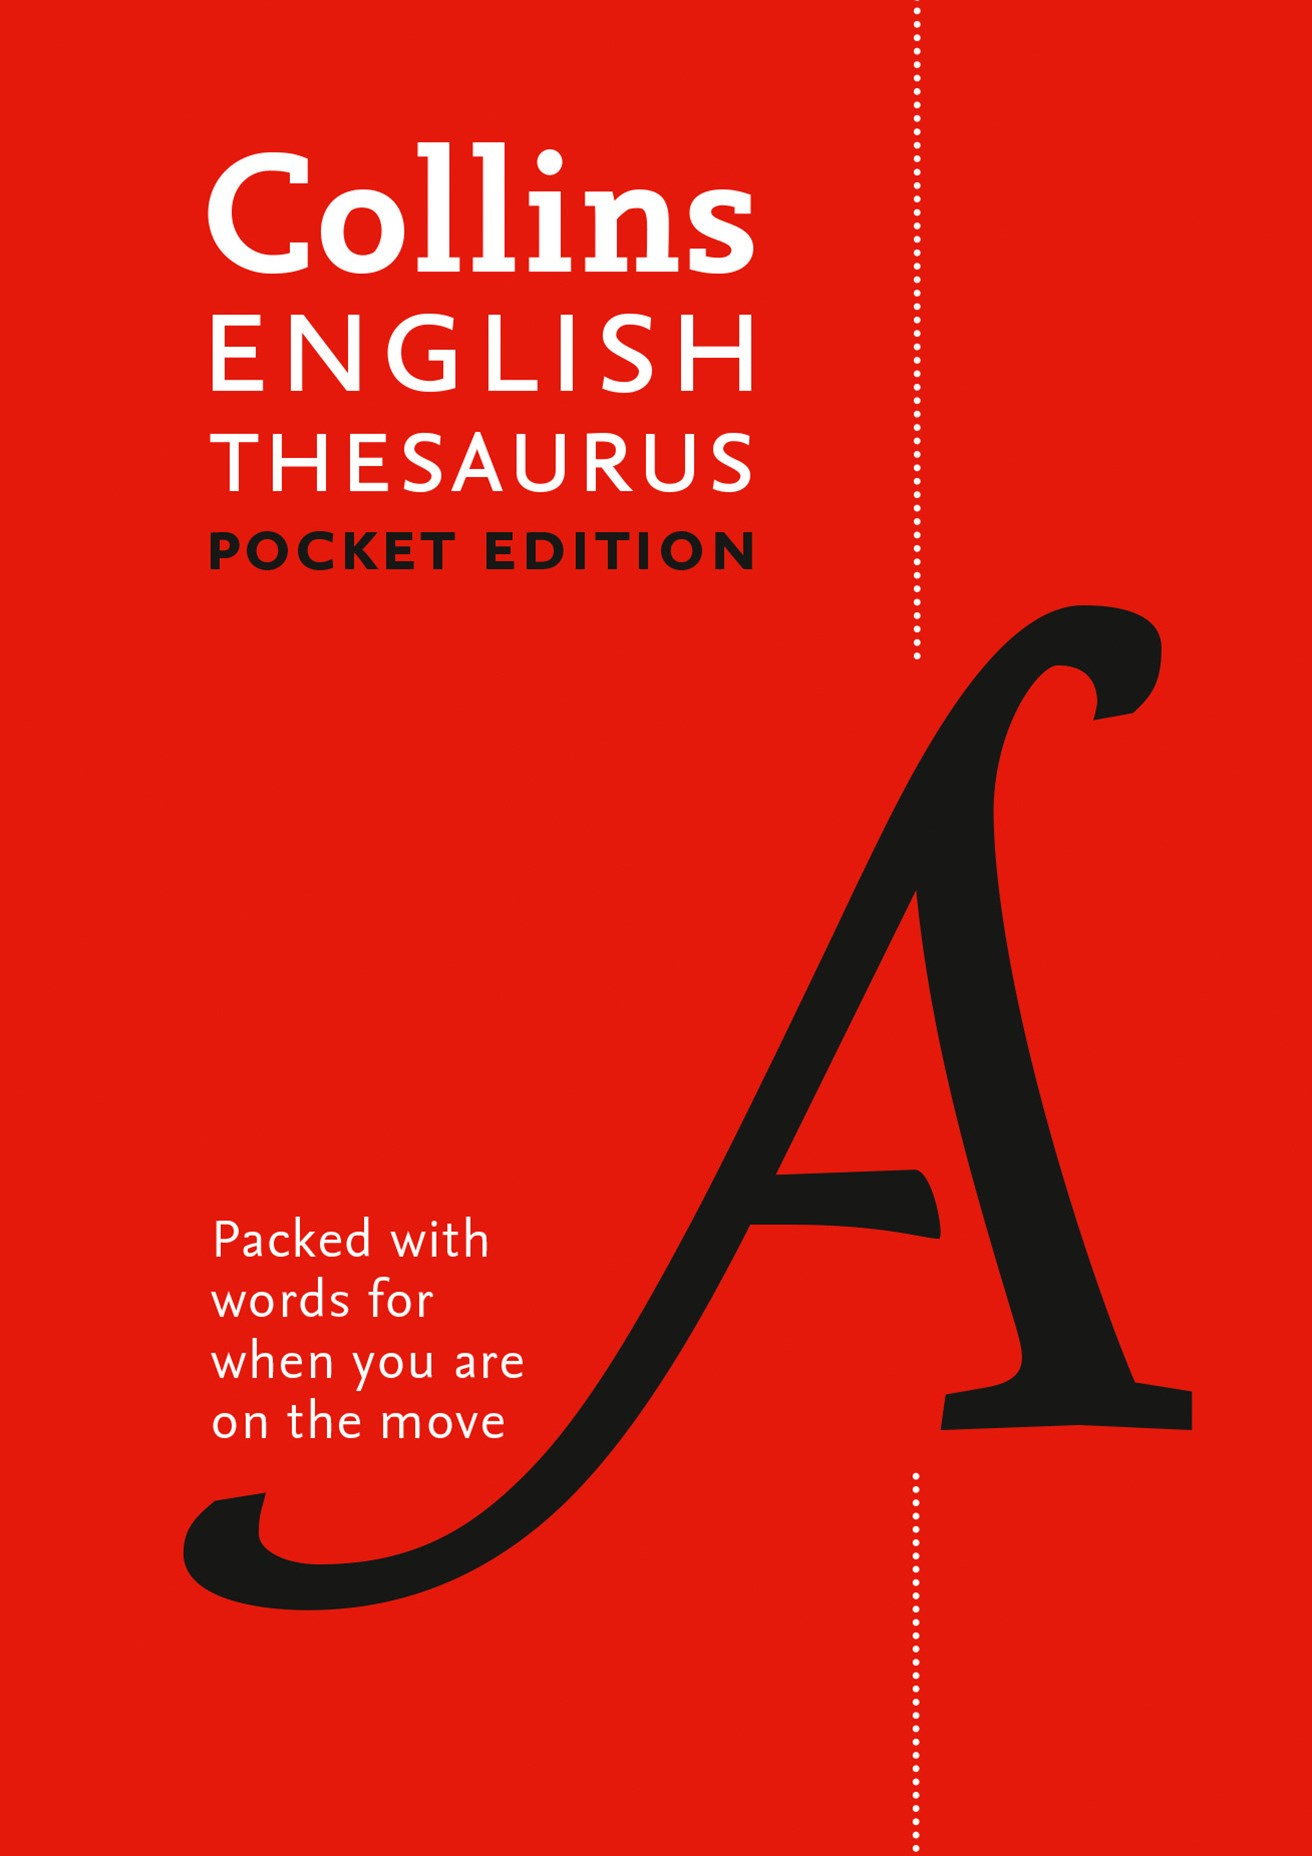 Collins English Thesaurus Pocket Edition [7th Edition]